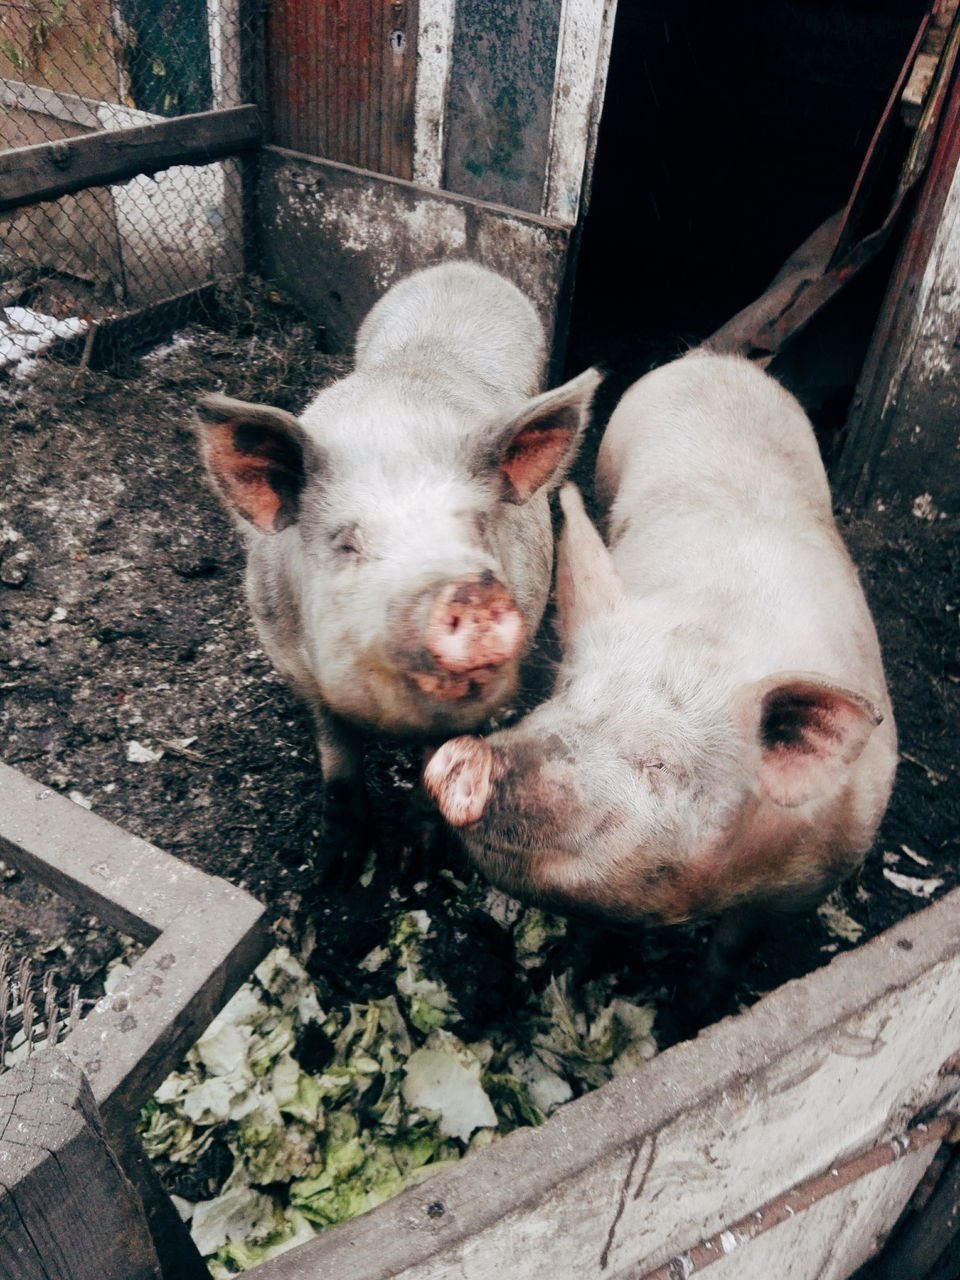 animal themes, pig, domestic animals, piglet, one animal, mammal, livestock, high angle view, day, young animal, no people, outdoors, looking at camera, pets, cute, close-up, portrait, nature